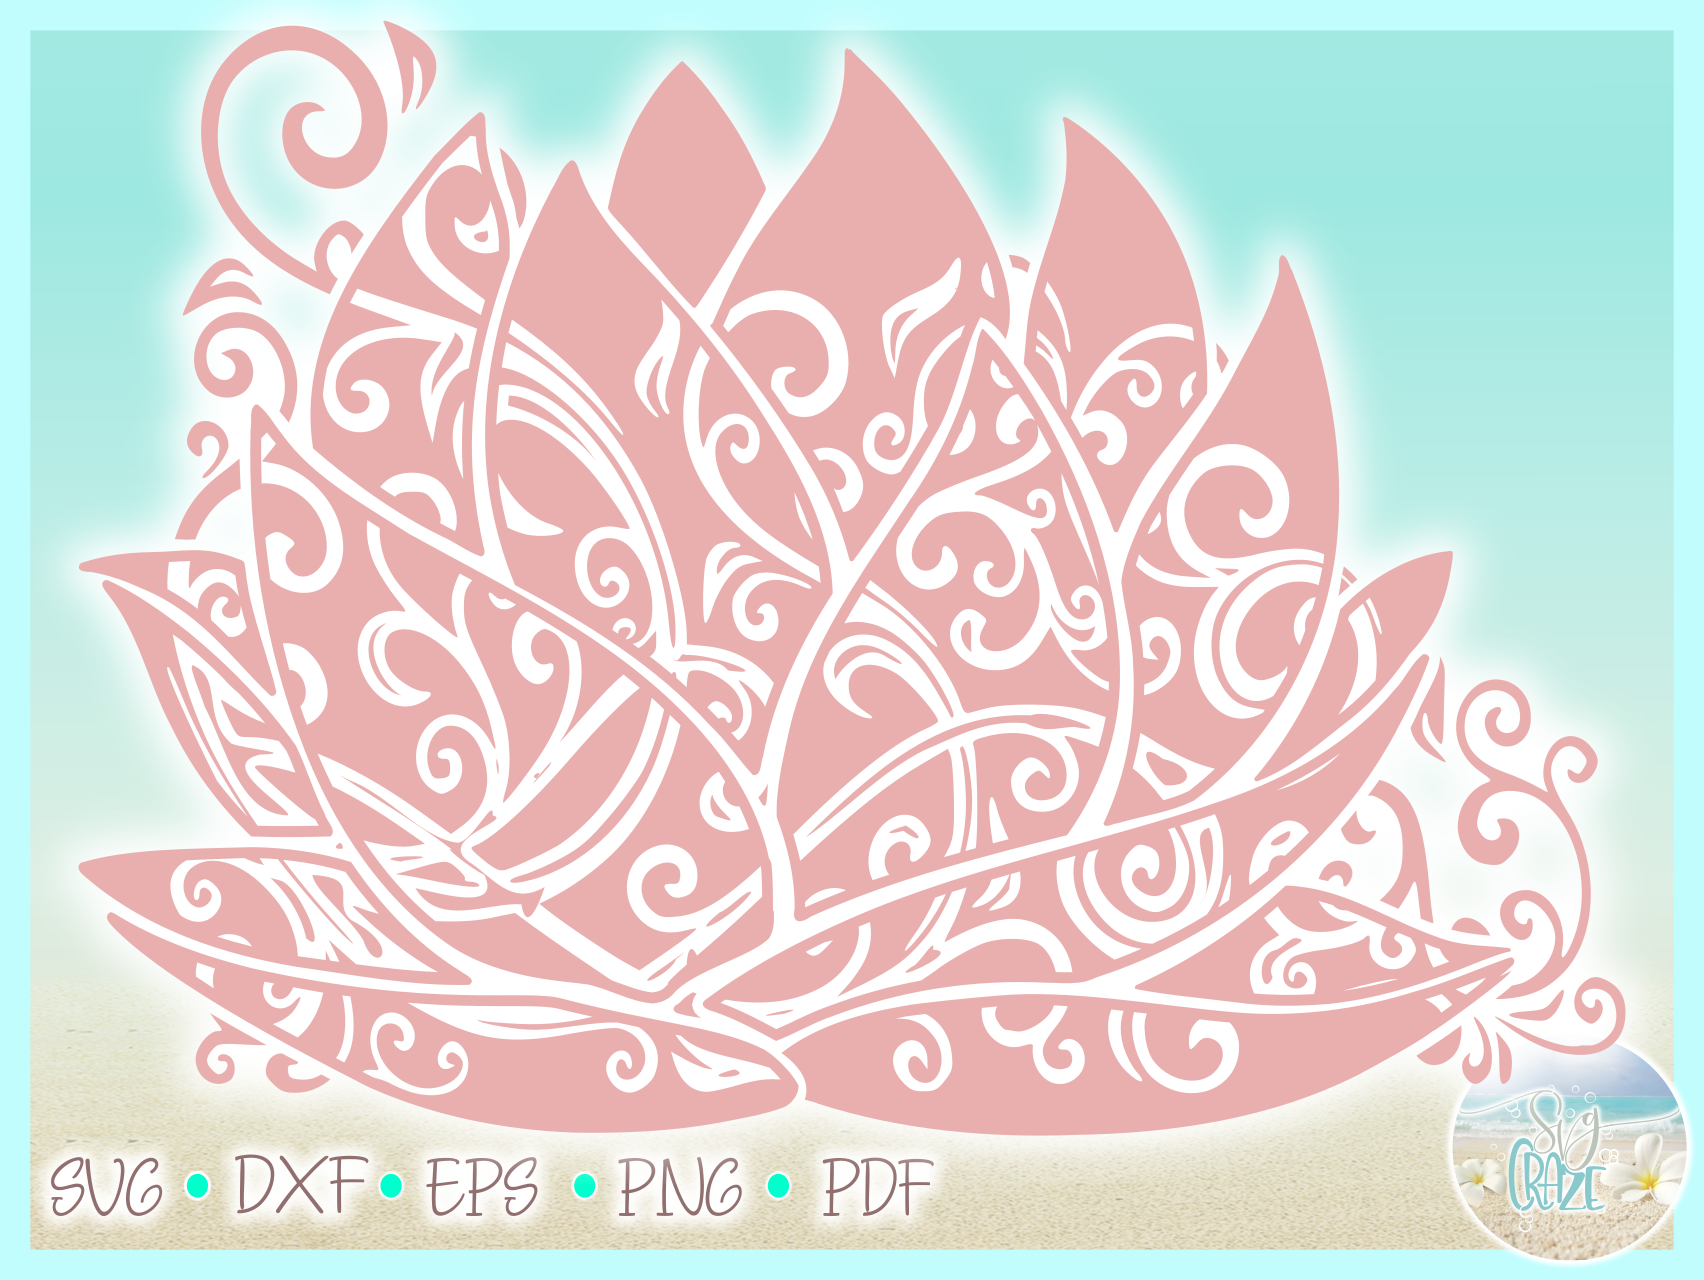 Lotus Water Lily Flower Mandala Svg Dxf Eps Png Pdf Files example image 3